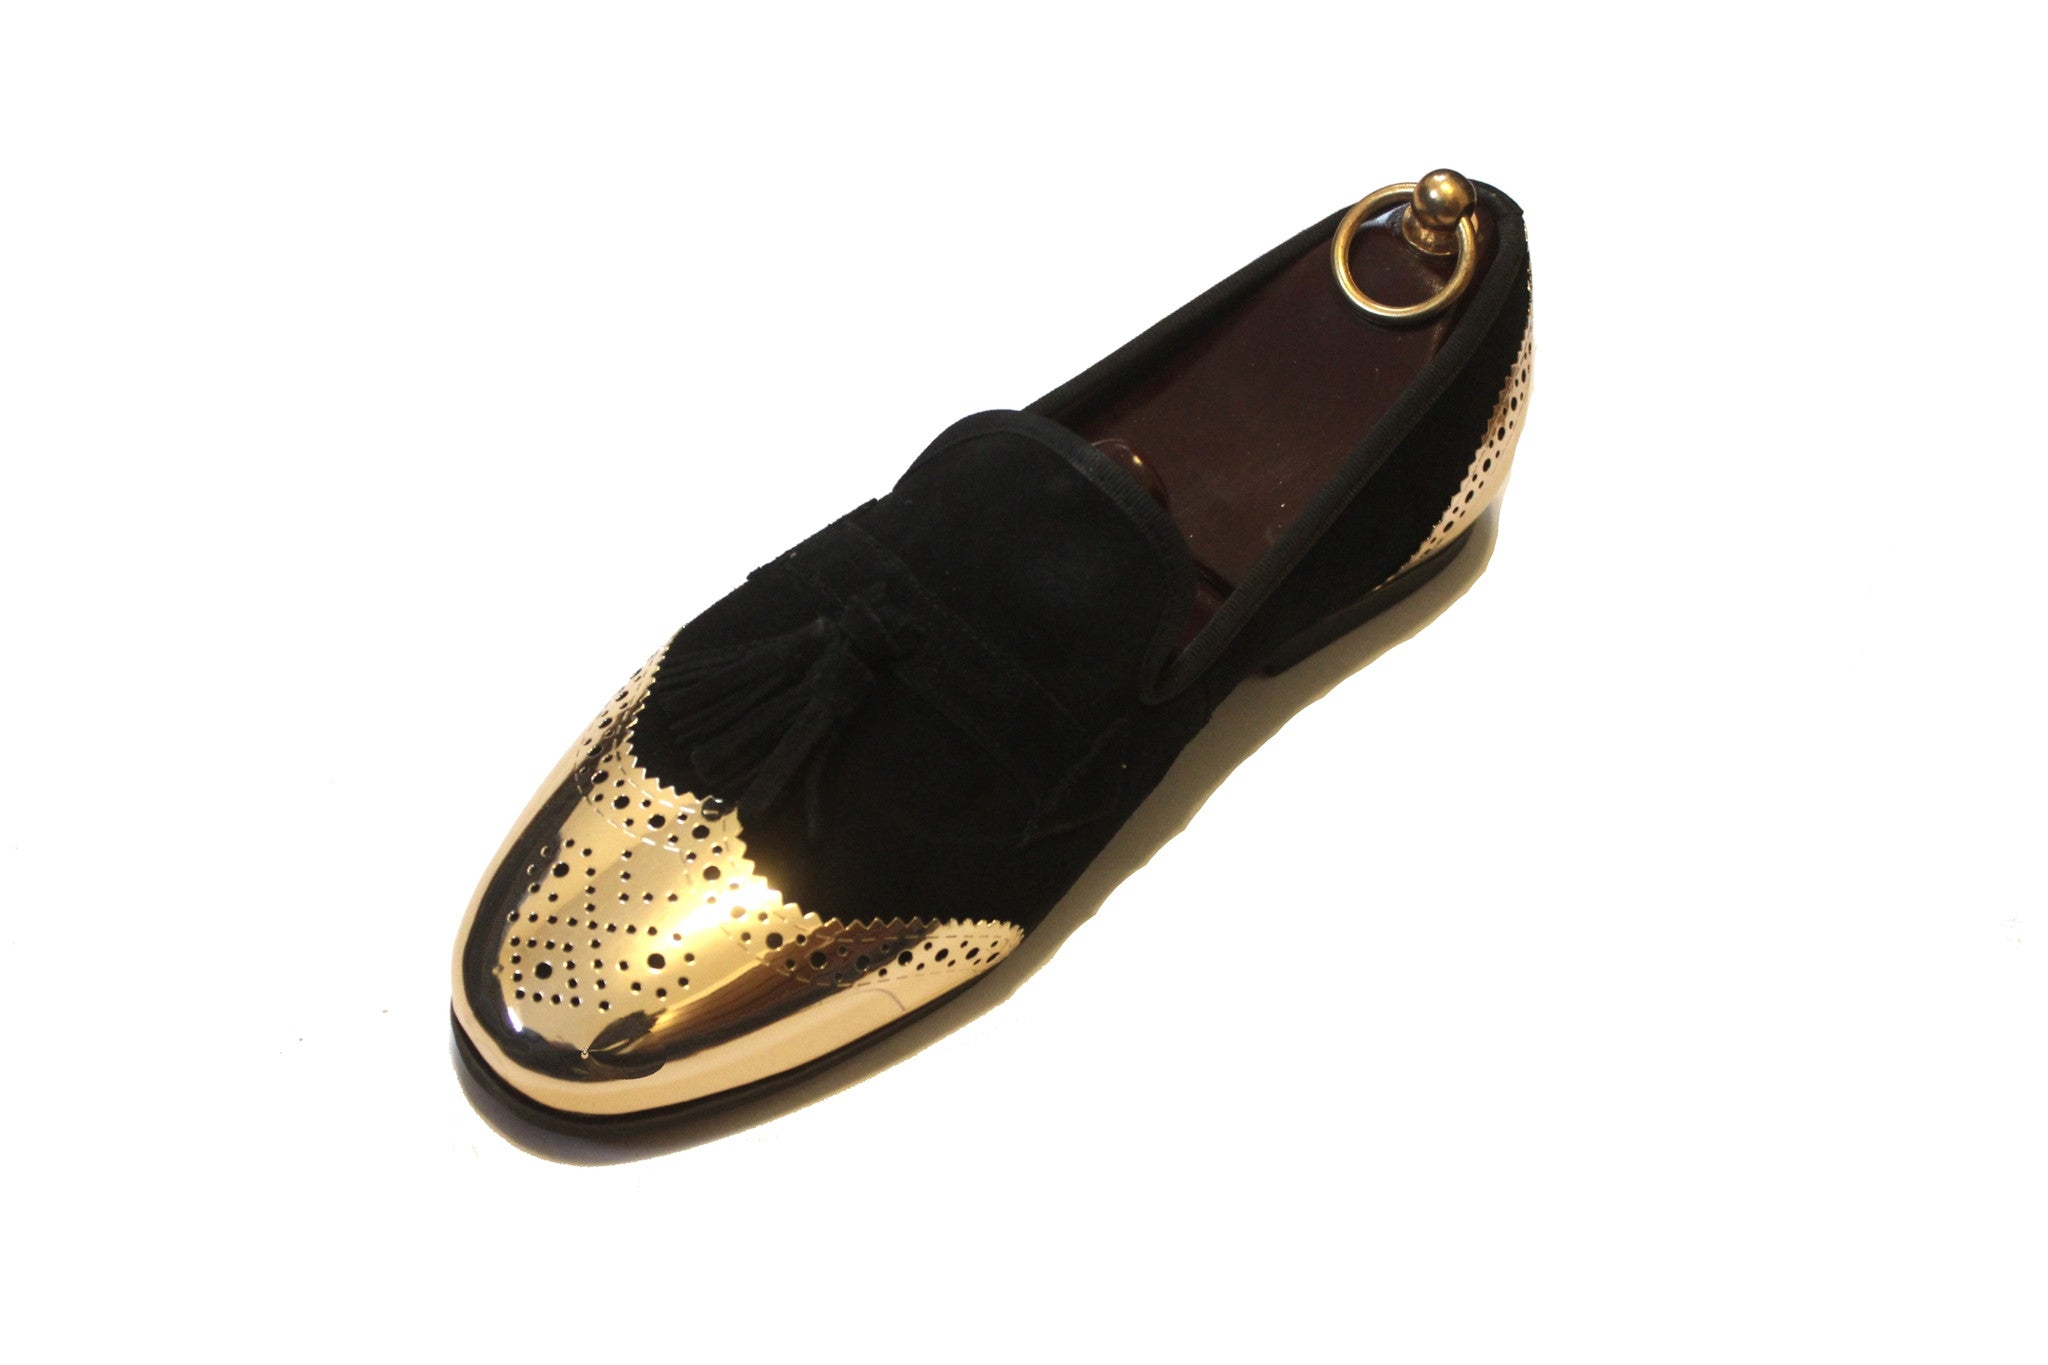 Smythe and Digby Gold Toe Cap Black Suede Tassel Loafers (10.5)